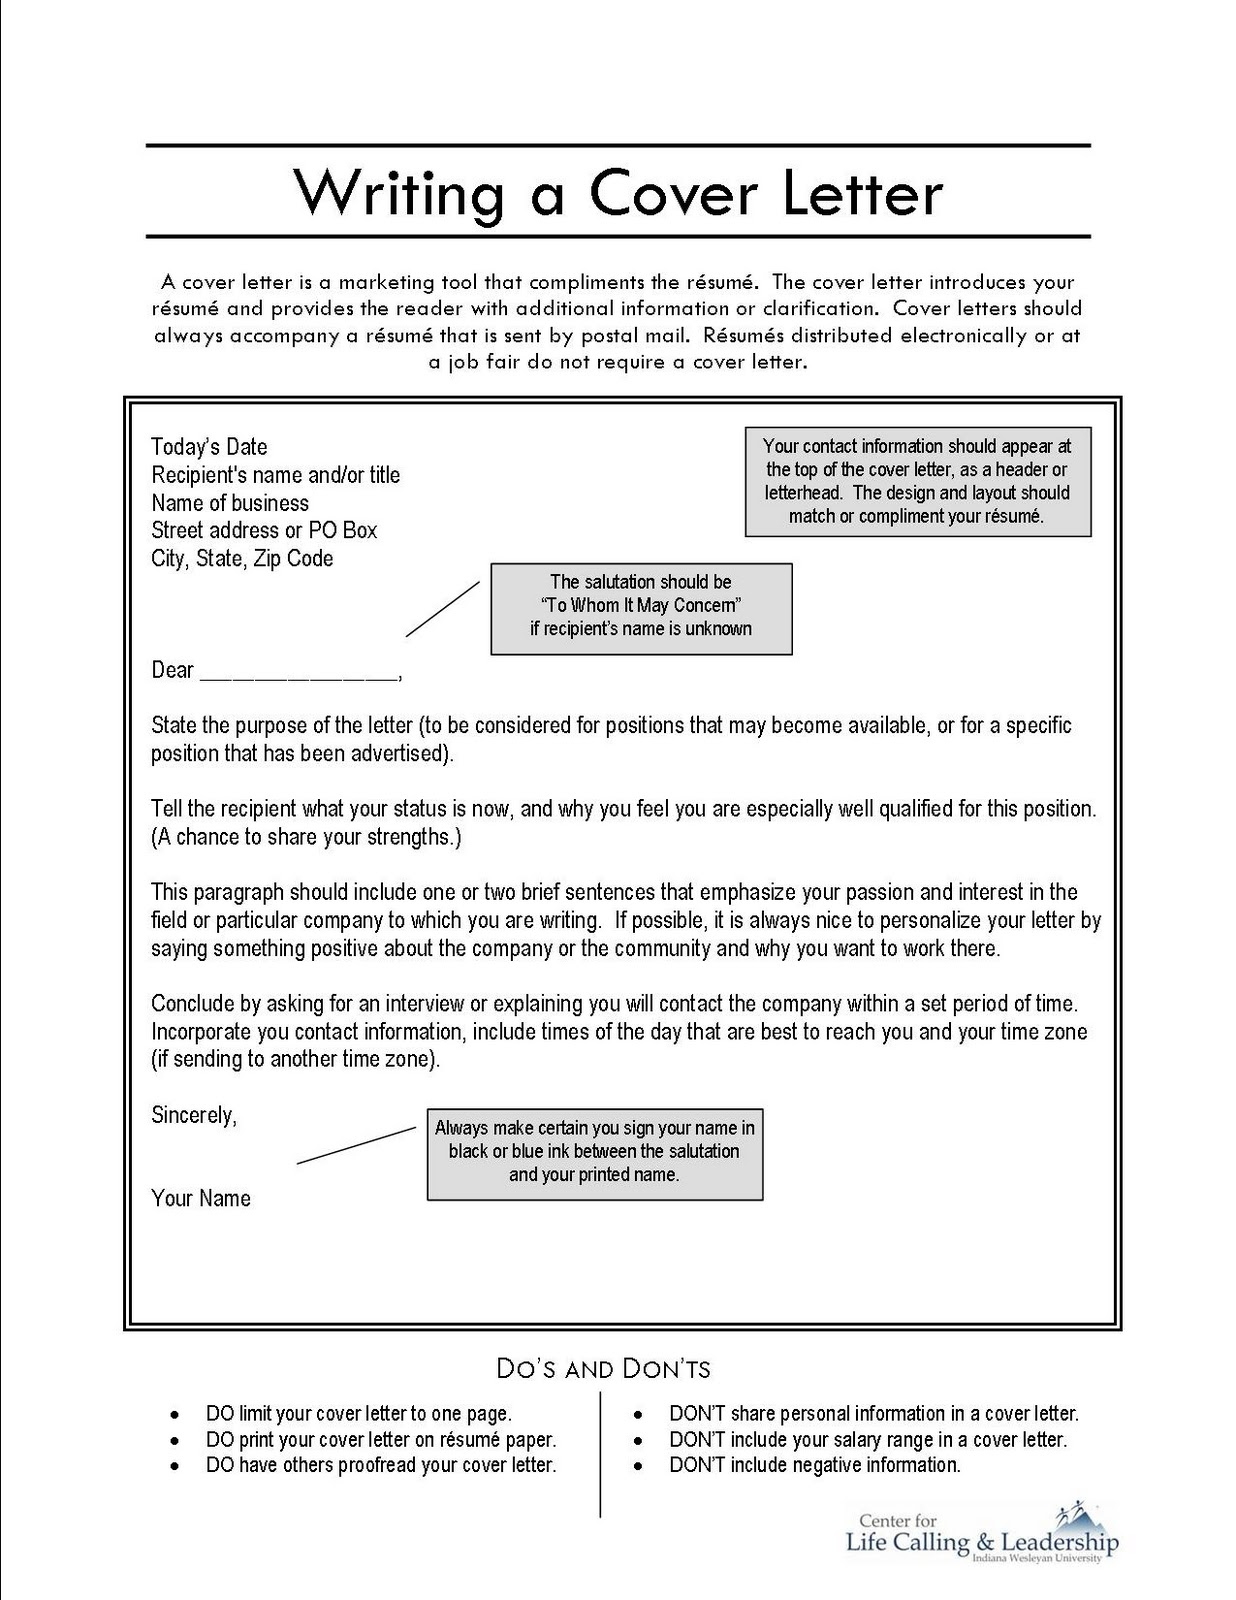 Sample Cover Letter Salary Requirements Open Cover Letters Anonymous